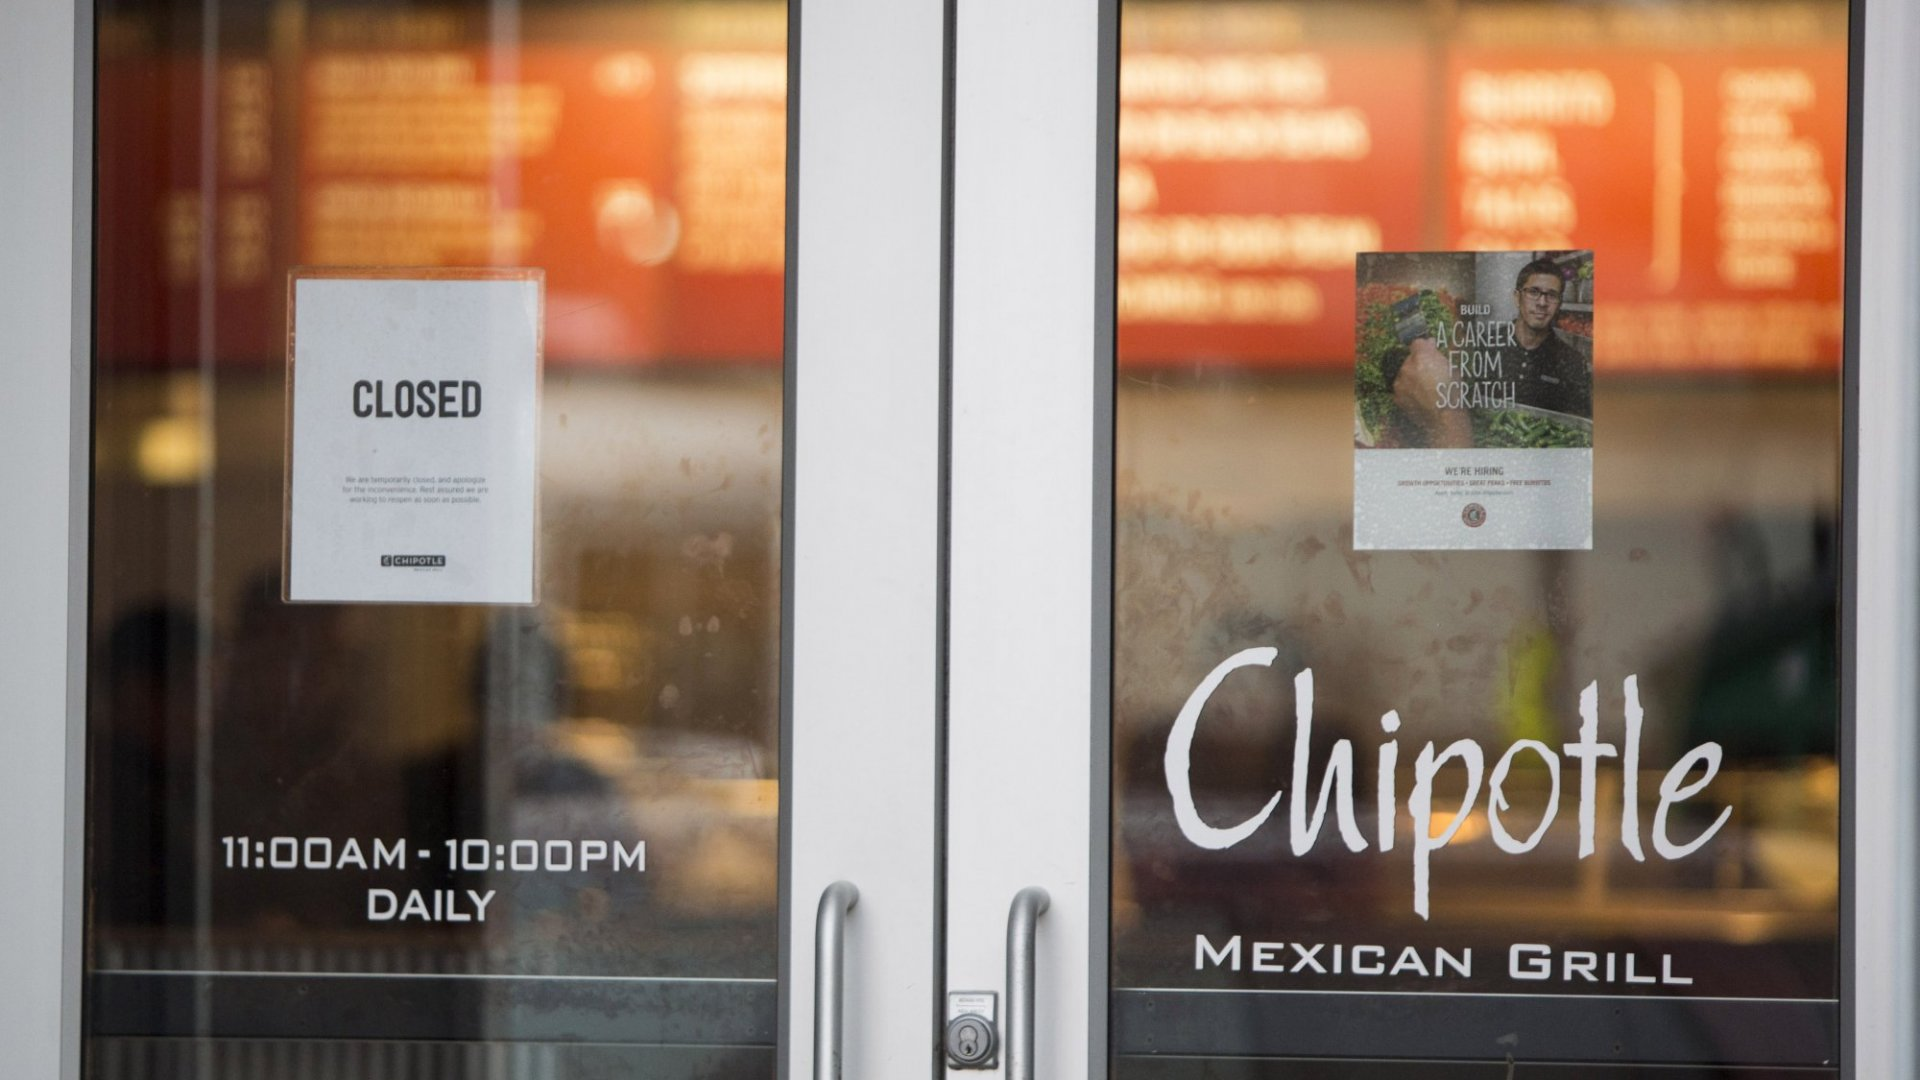 Chipotle to Briefly Close All Stores to Address Food Safety Issues